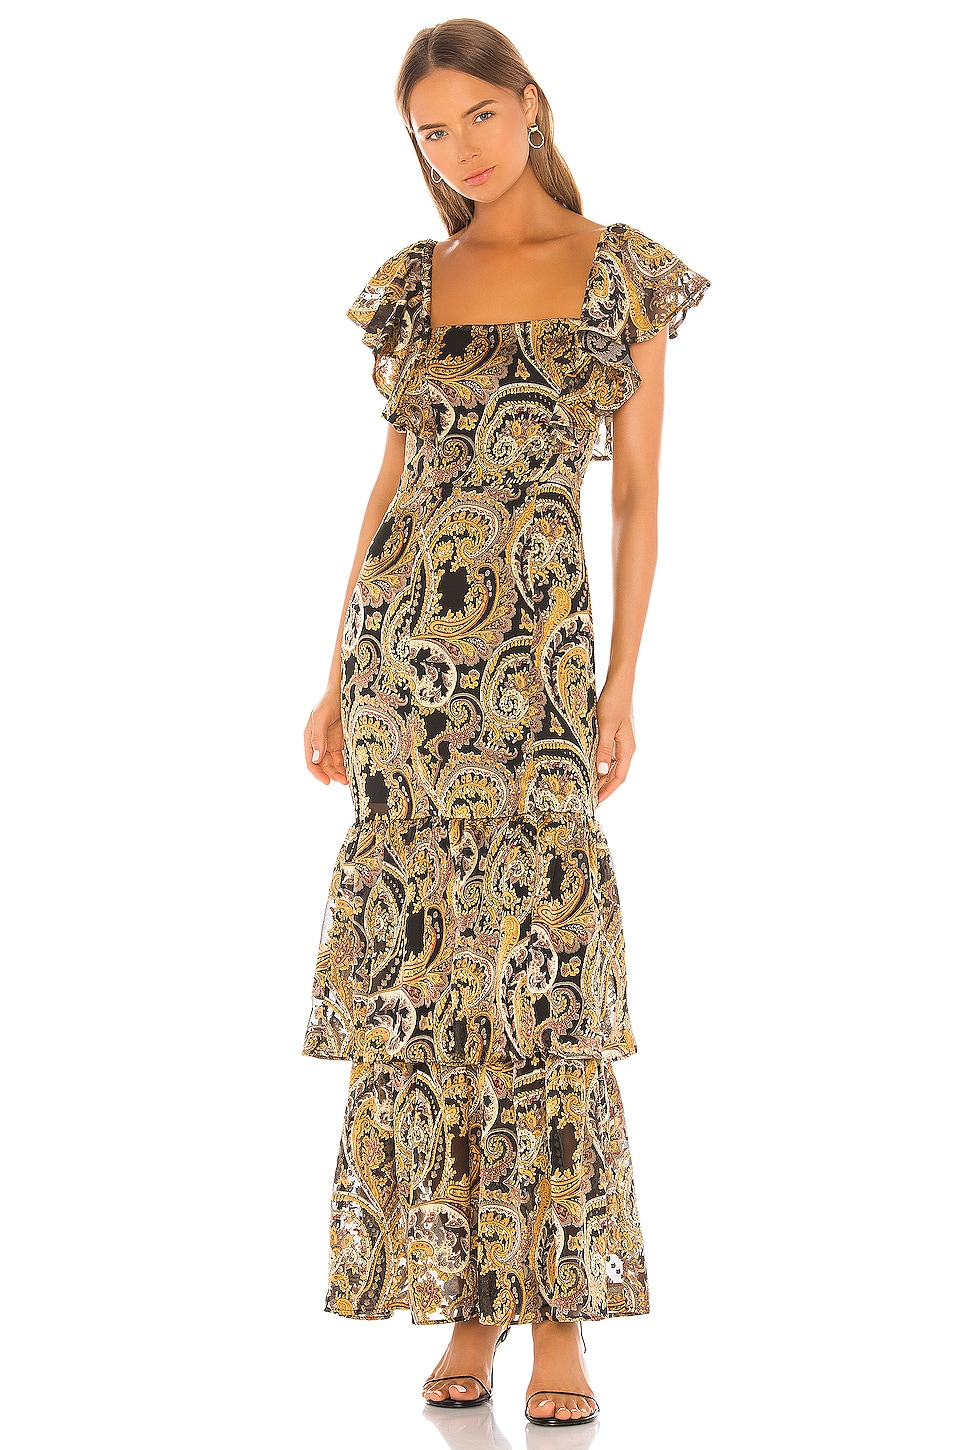 House of Harlow 1960 X REVOLVE Daya Maxi Dress in Black & Gold Paisley